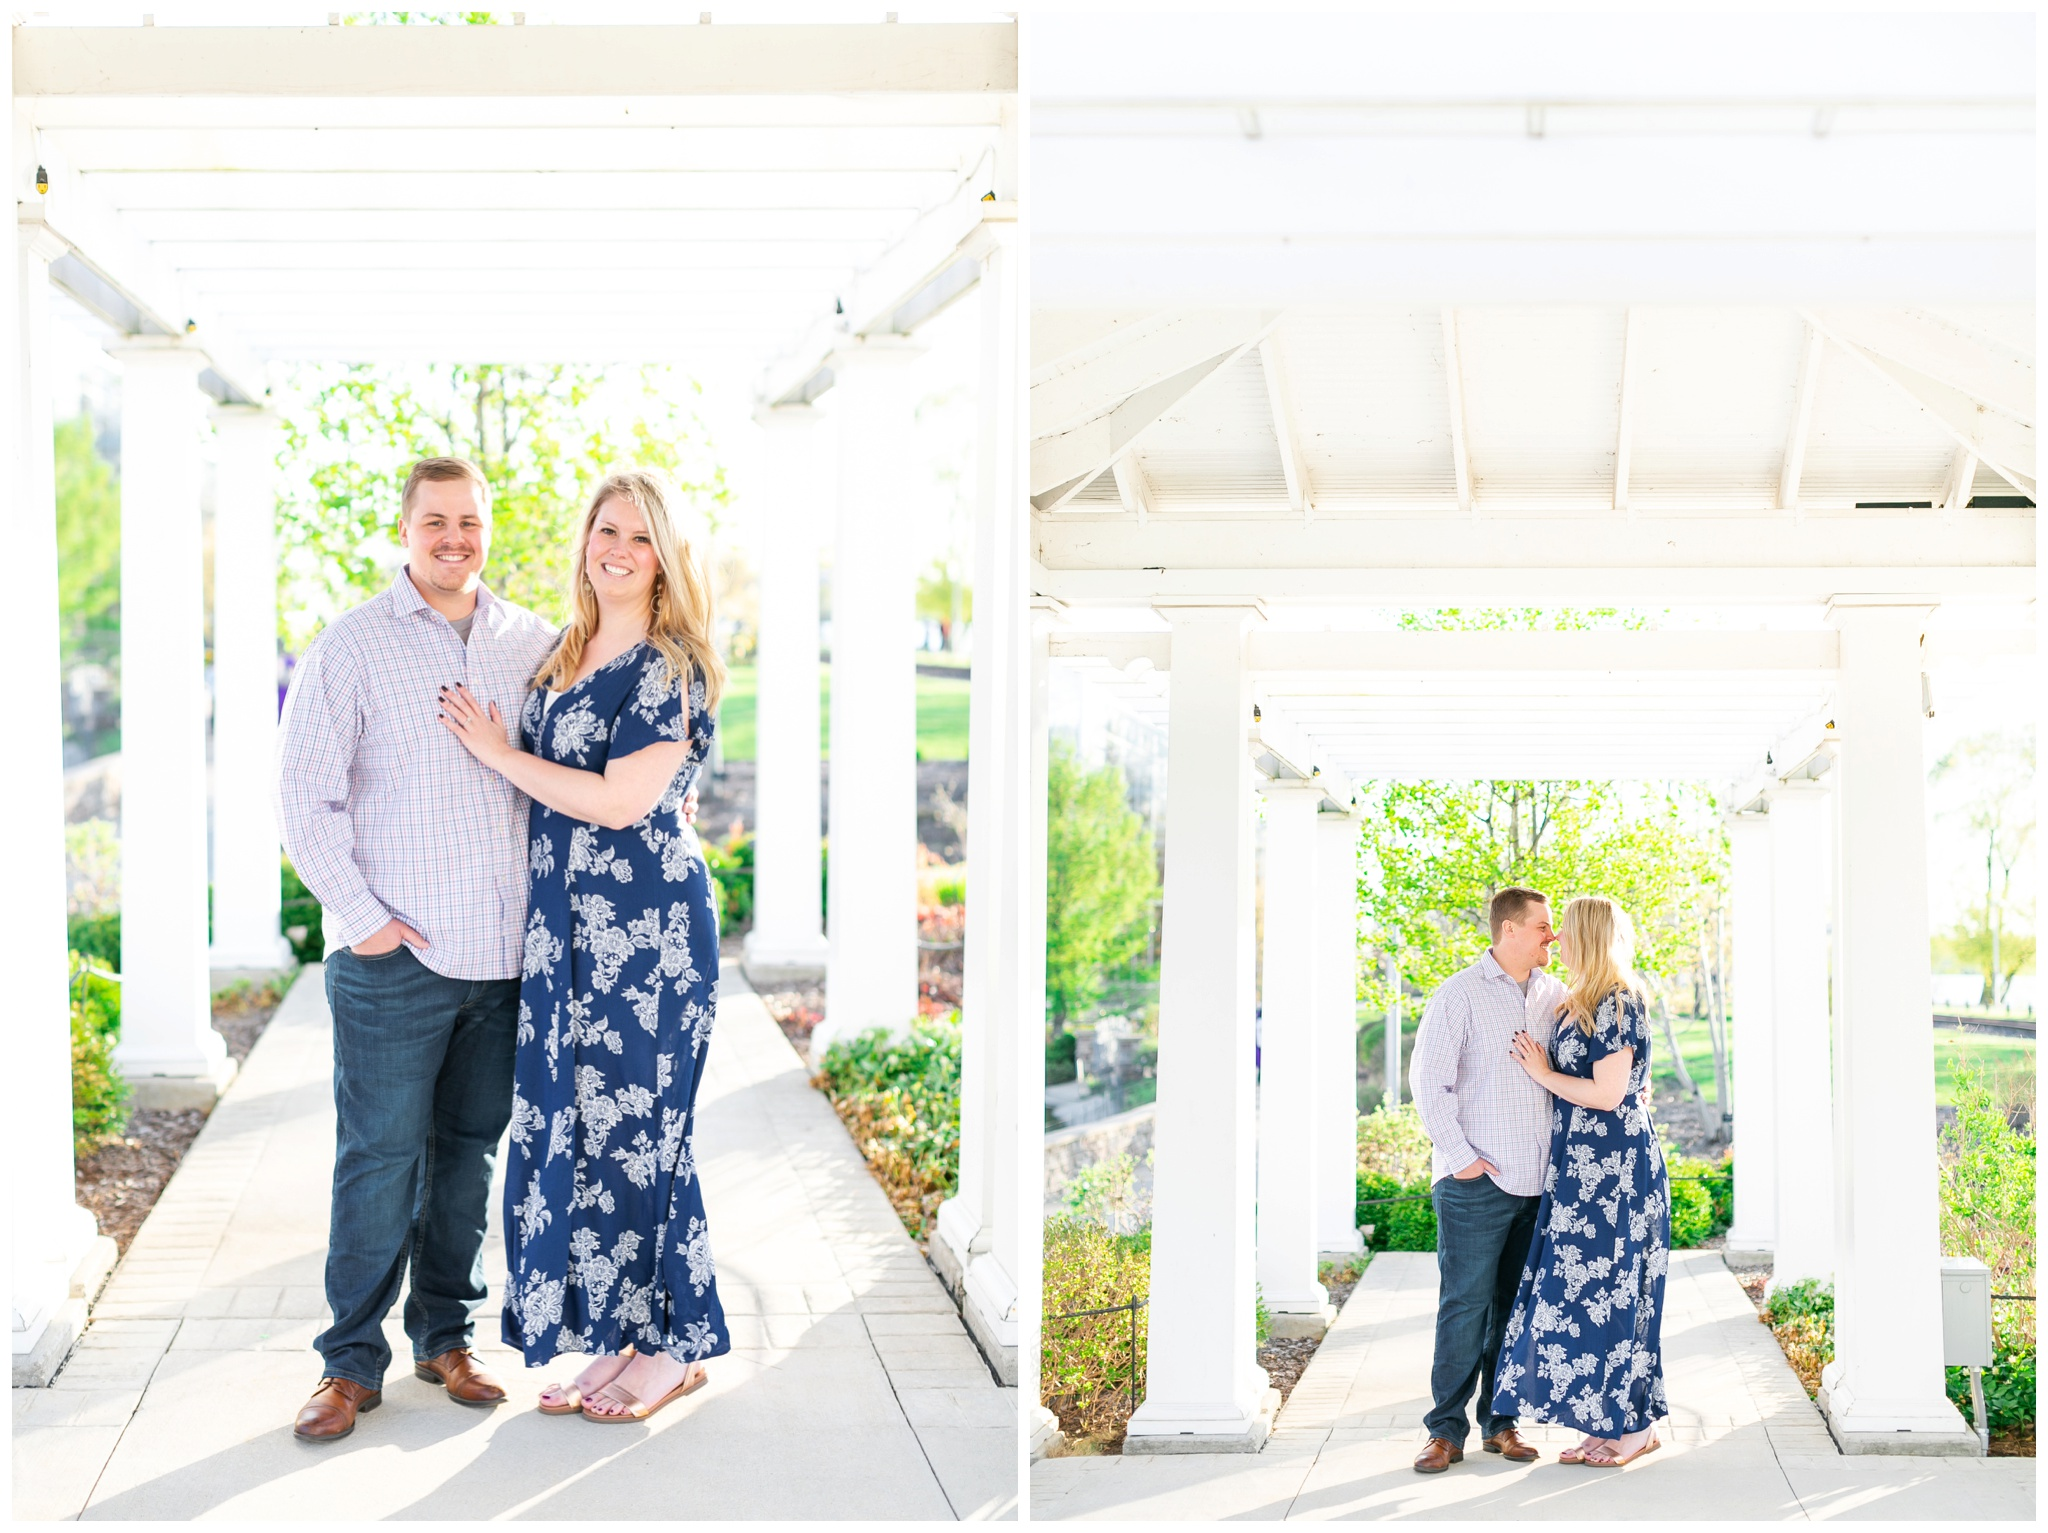 nicholas_conservatory_engagement_session_rockford_illinois_caynay_photo_2985.jpg